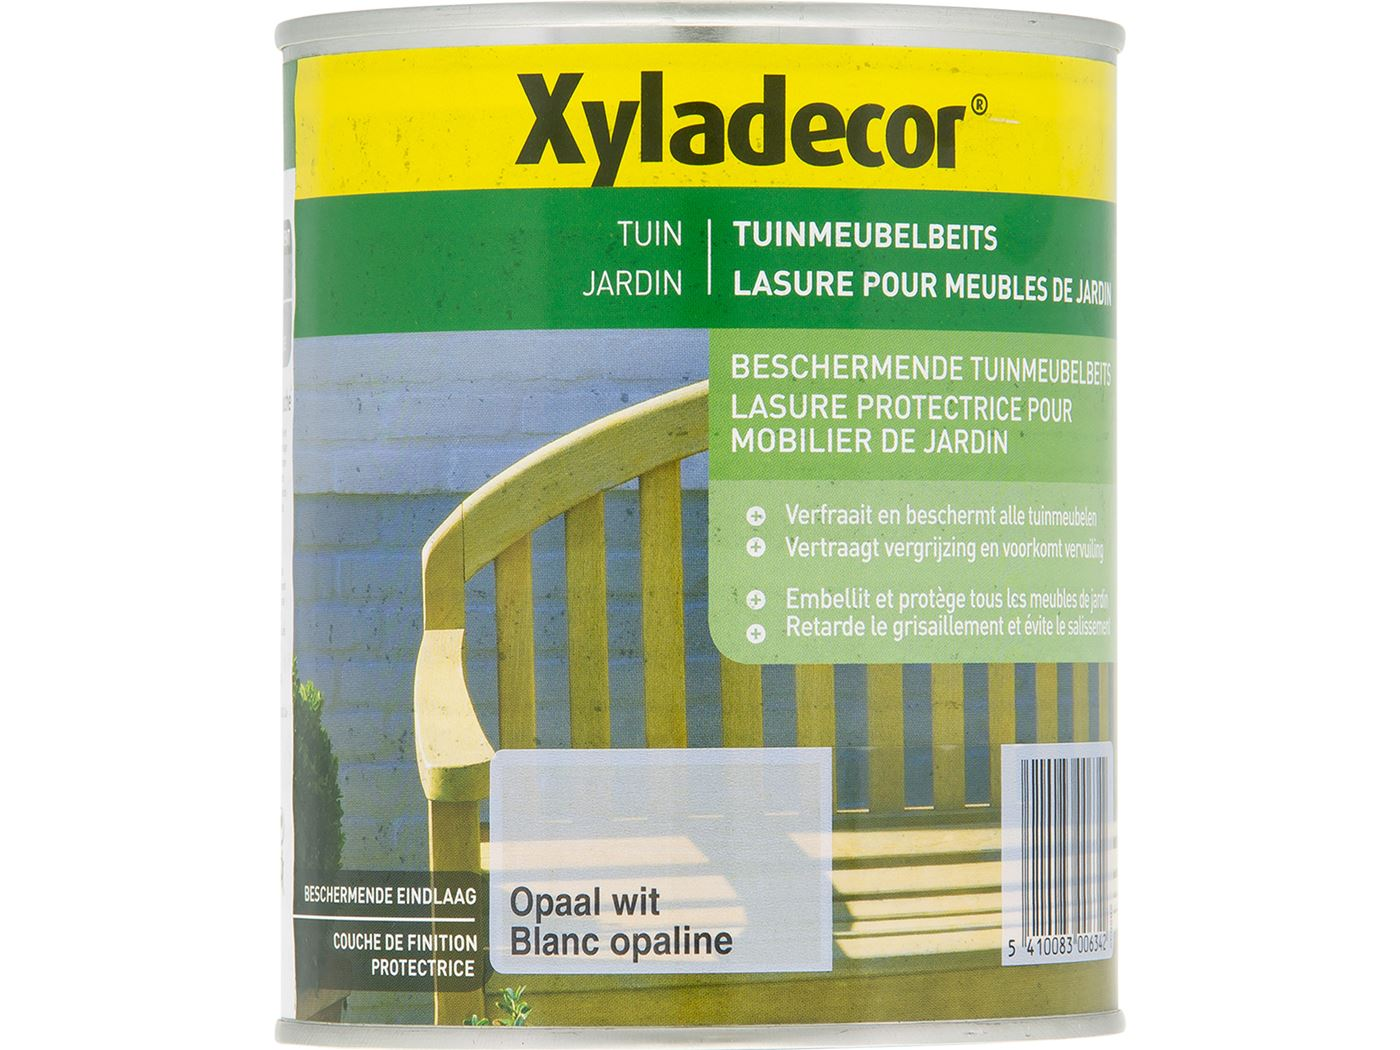 xyladecor tuinmeubelbeits-opaal wit